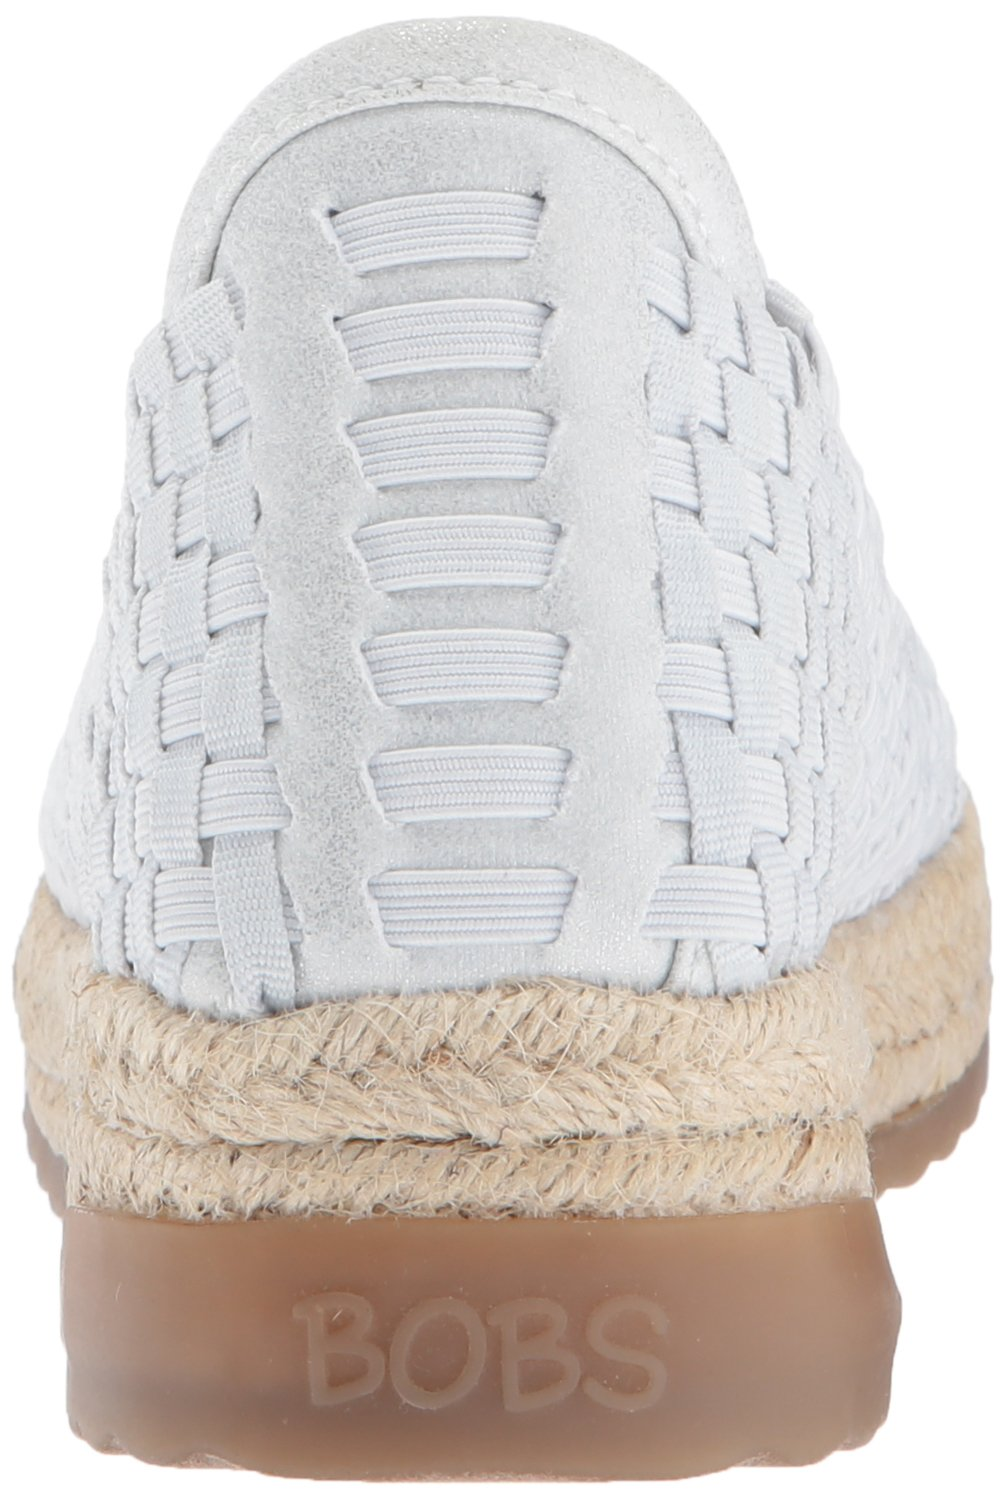 b22f38a7de5 Skechers BOBS from Women s High Jump-Sporty Espadrille  Amazon.com.au   Fashion